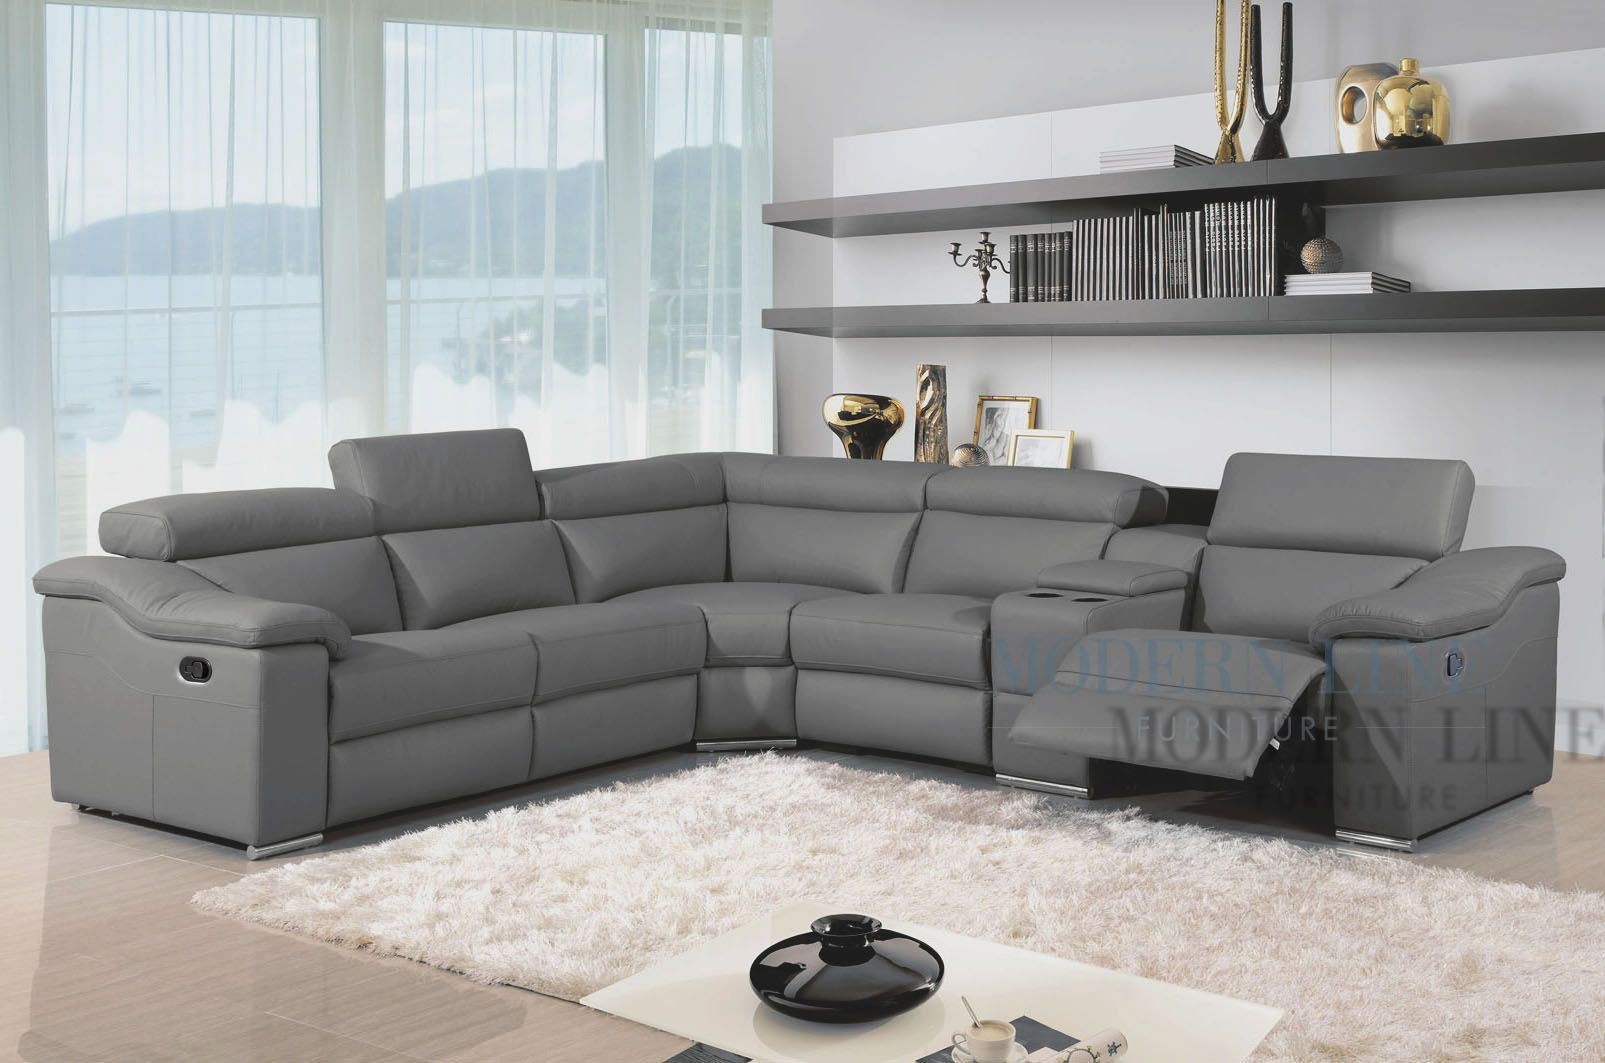 Modern Leather Reclining Sectional Grey Couch Curved